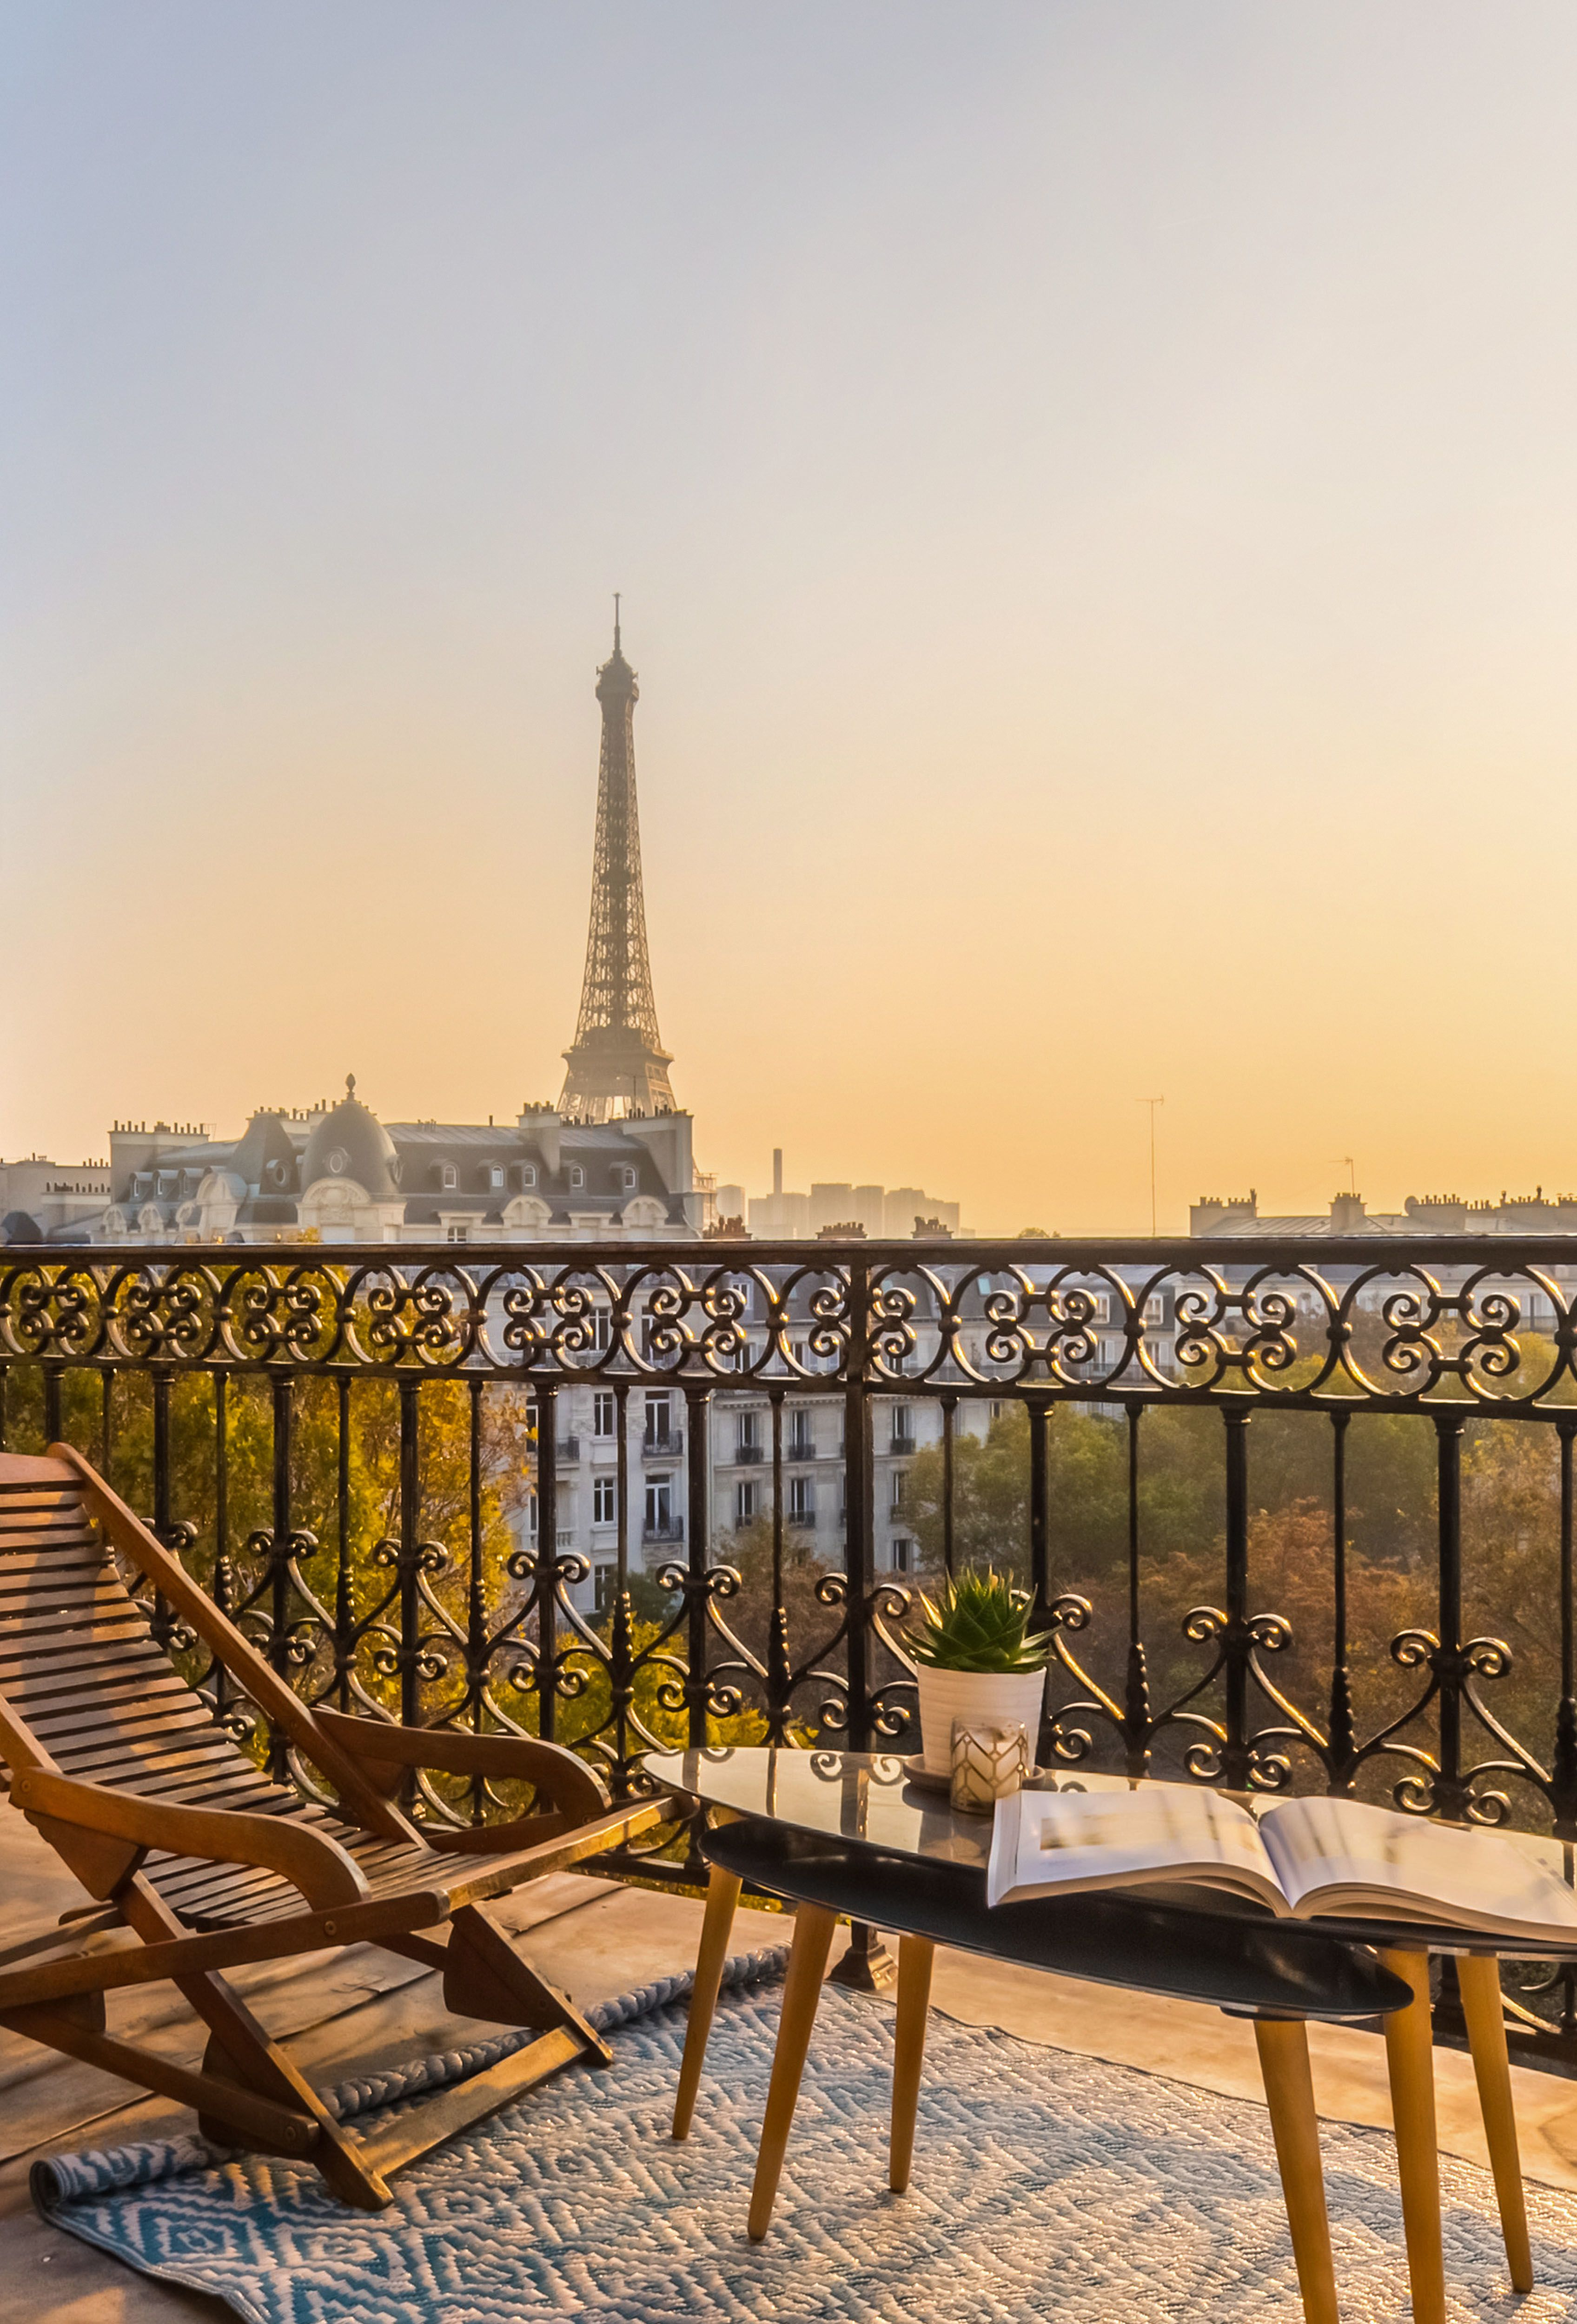 Paris Hotels With Balcony - Stunning Paris Hotels With Eiffel Tower Views